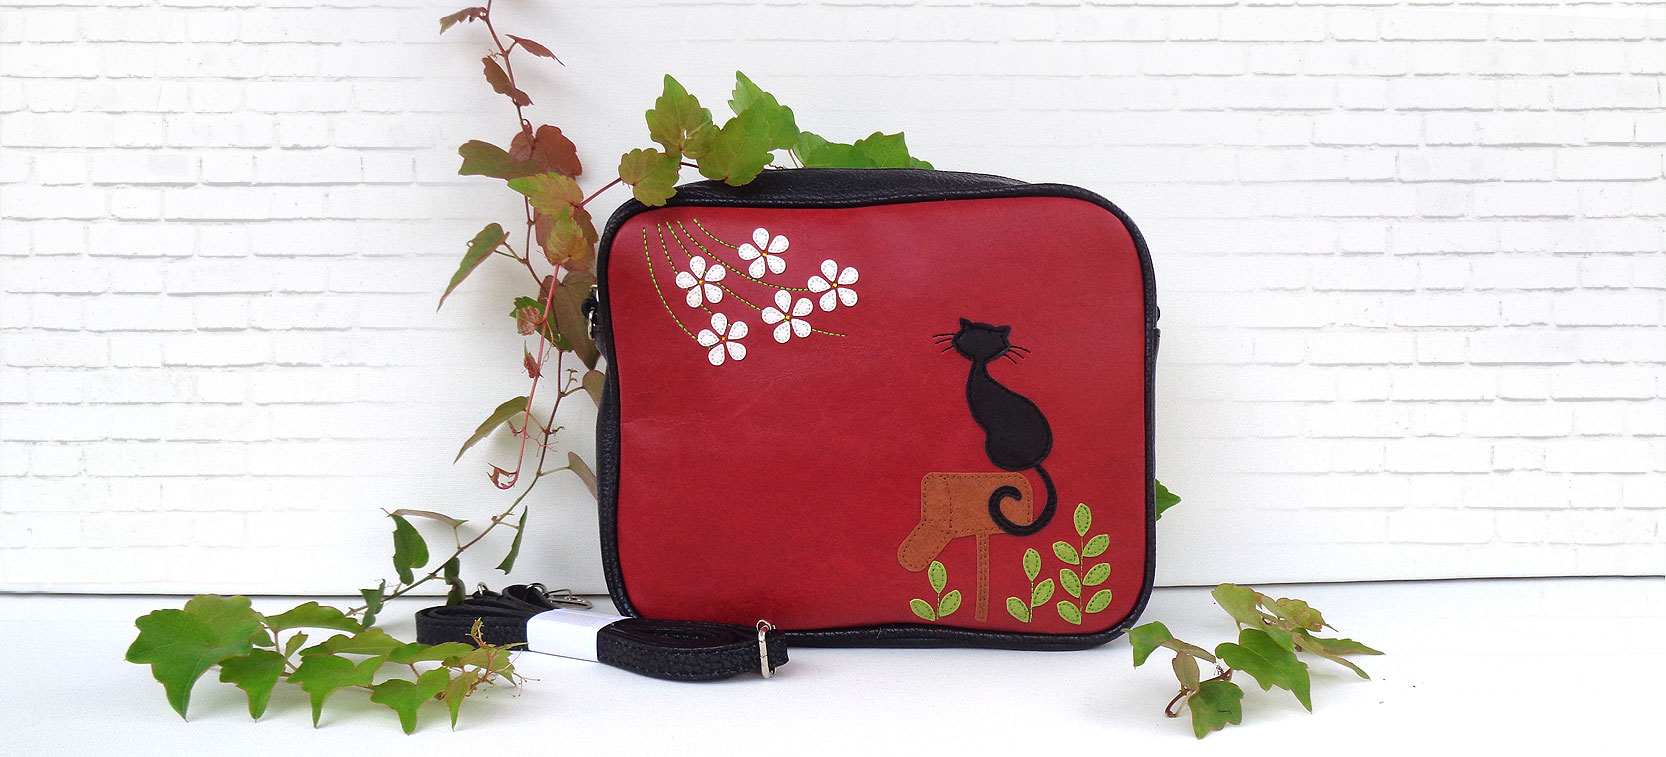 LAVISHY Adora collection design & wholesale applique vegan bags, wallets & accessories and gfits to gift shops, boutiques & book stores in Canada, USA and worldwide.